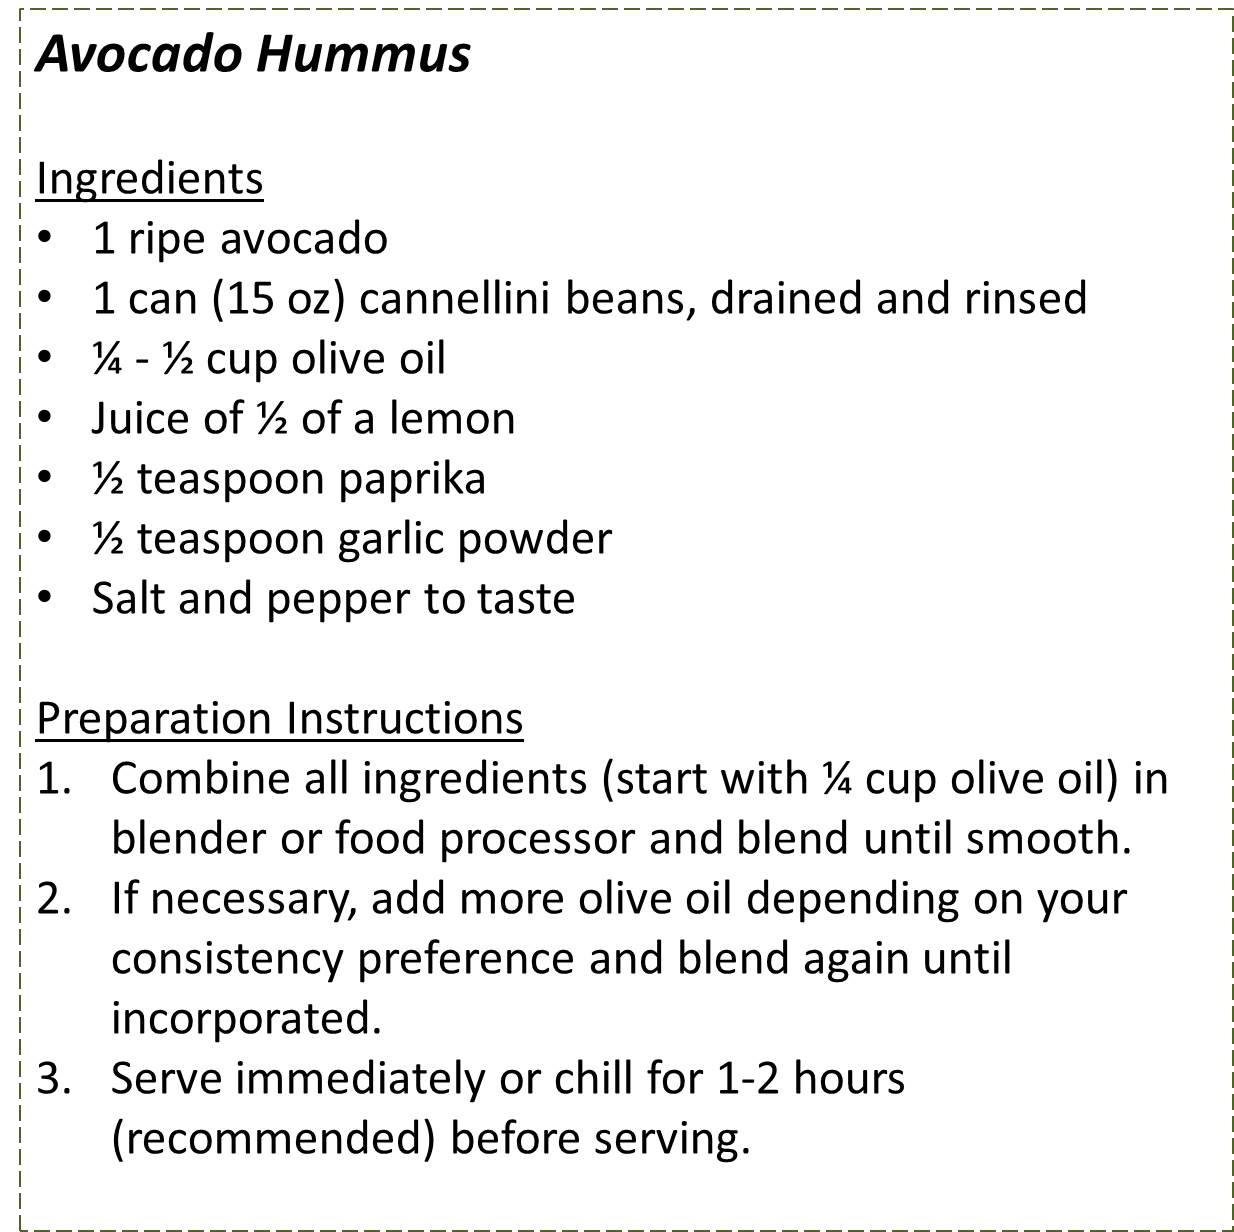 Avocado Hummus_recipe